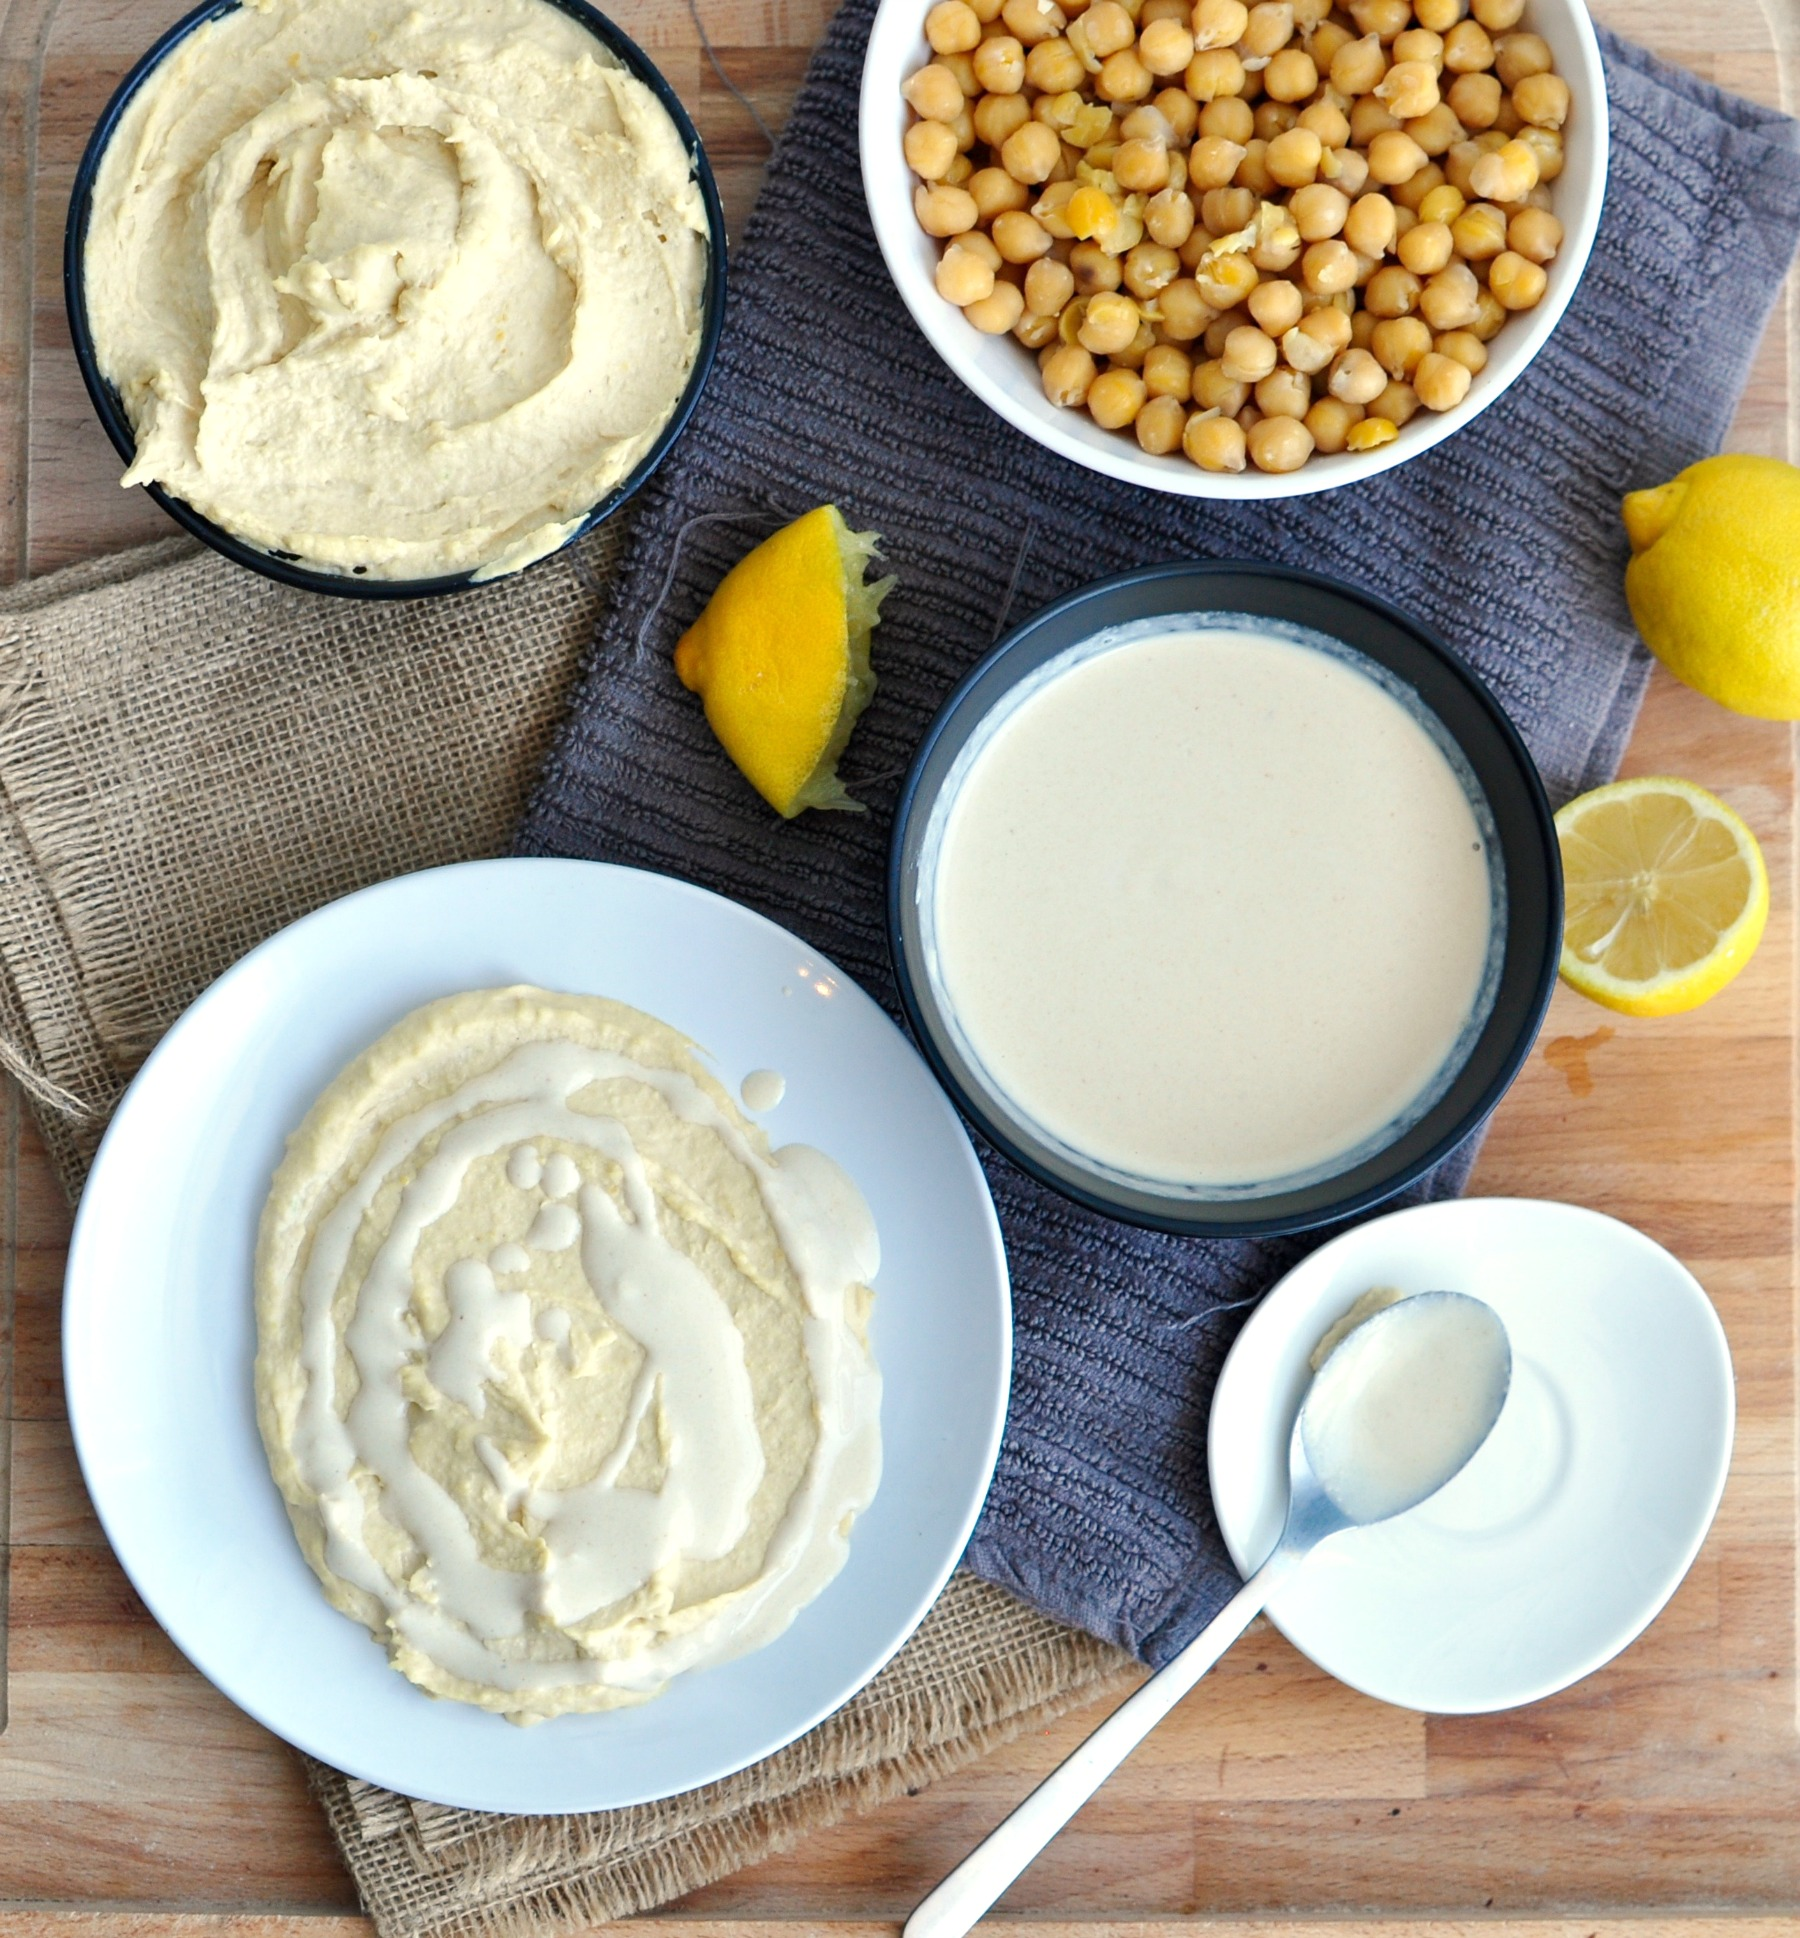 hummus and tahini